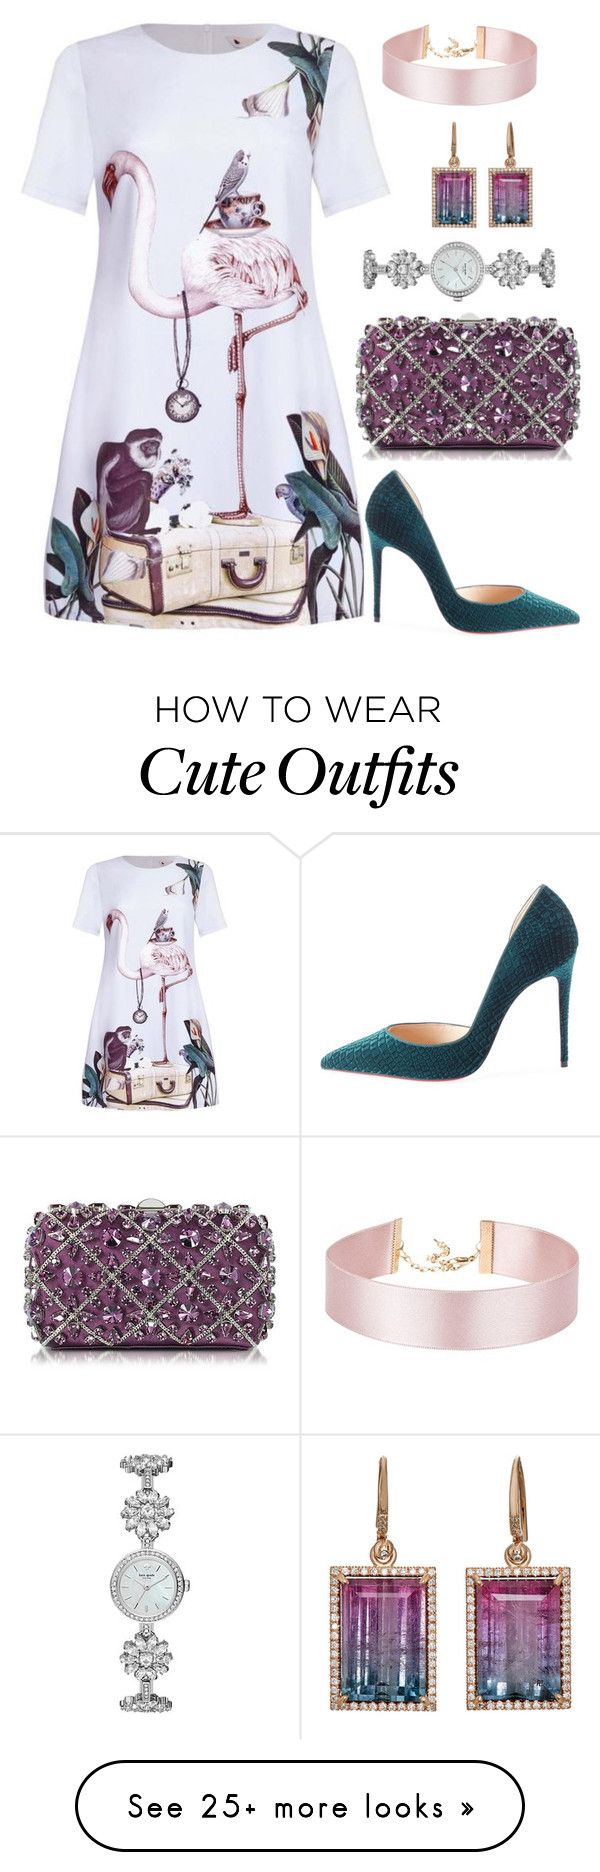 """Cute Outfit"" by sarahlong3019 on Polyvore featuring Irene Neuwirth, Rodo, Christian Louboutin and Kate Spade"